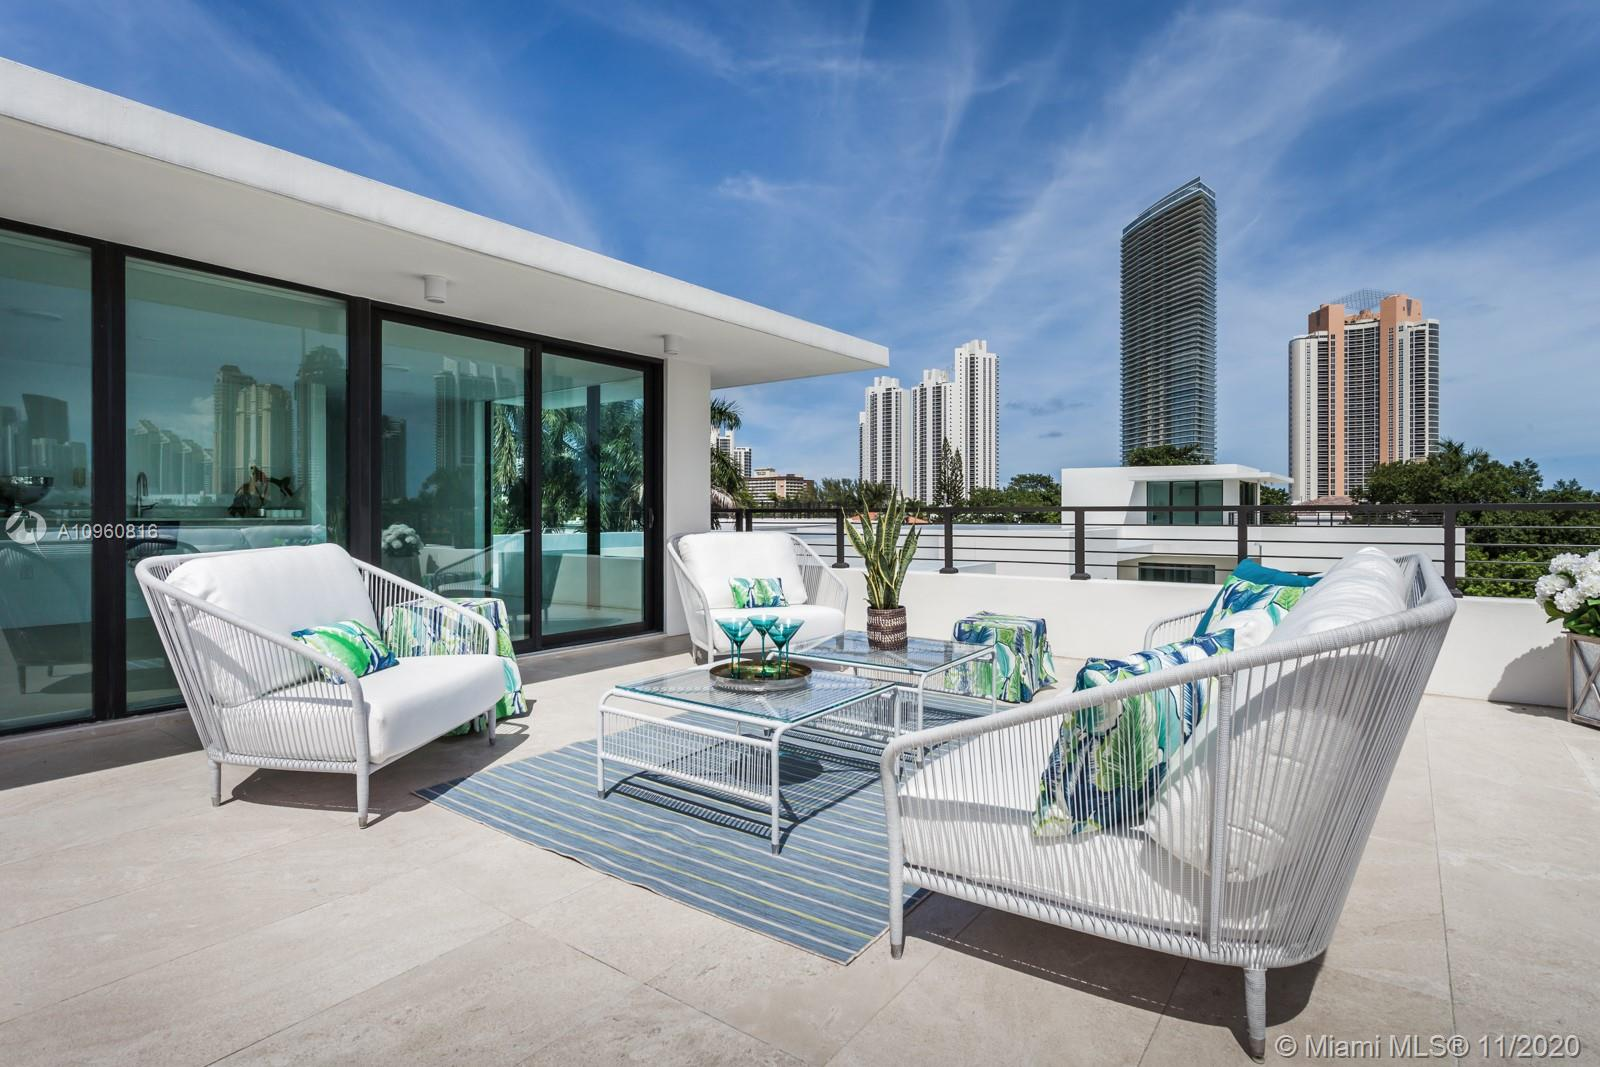 341 189th St, Sunny Isles Beach, Florida 33160, 6 Bedrooms Bedrooms, ,7 BathroomsBathrooms,Residential,For Sale,341 189th St,A10960816